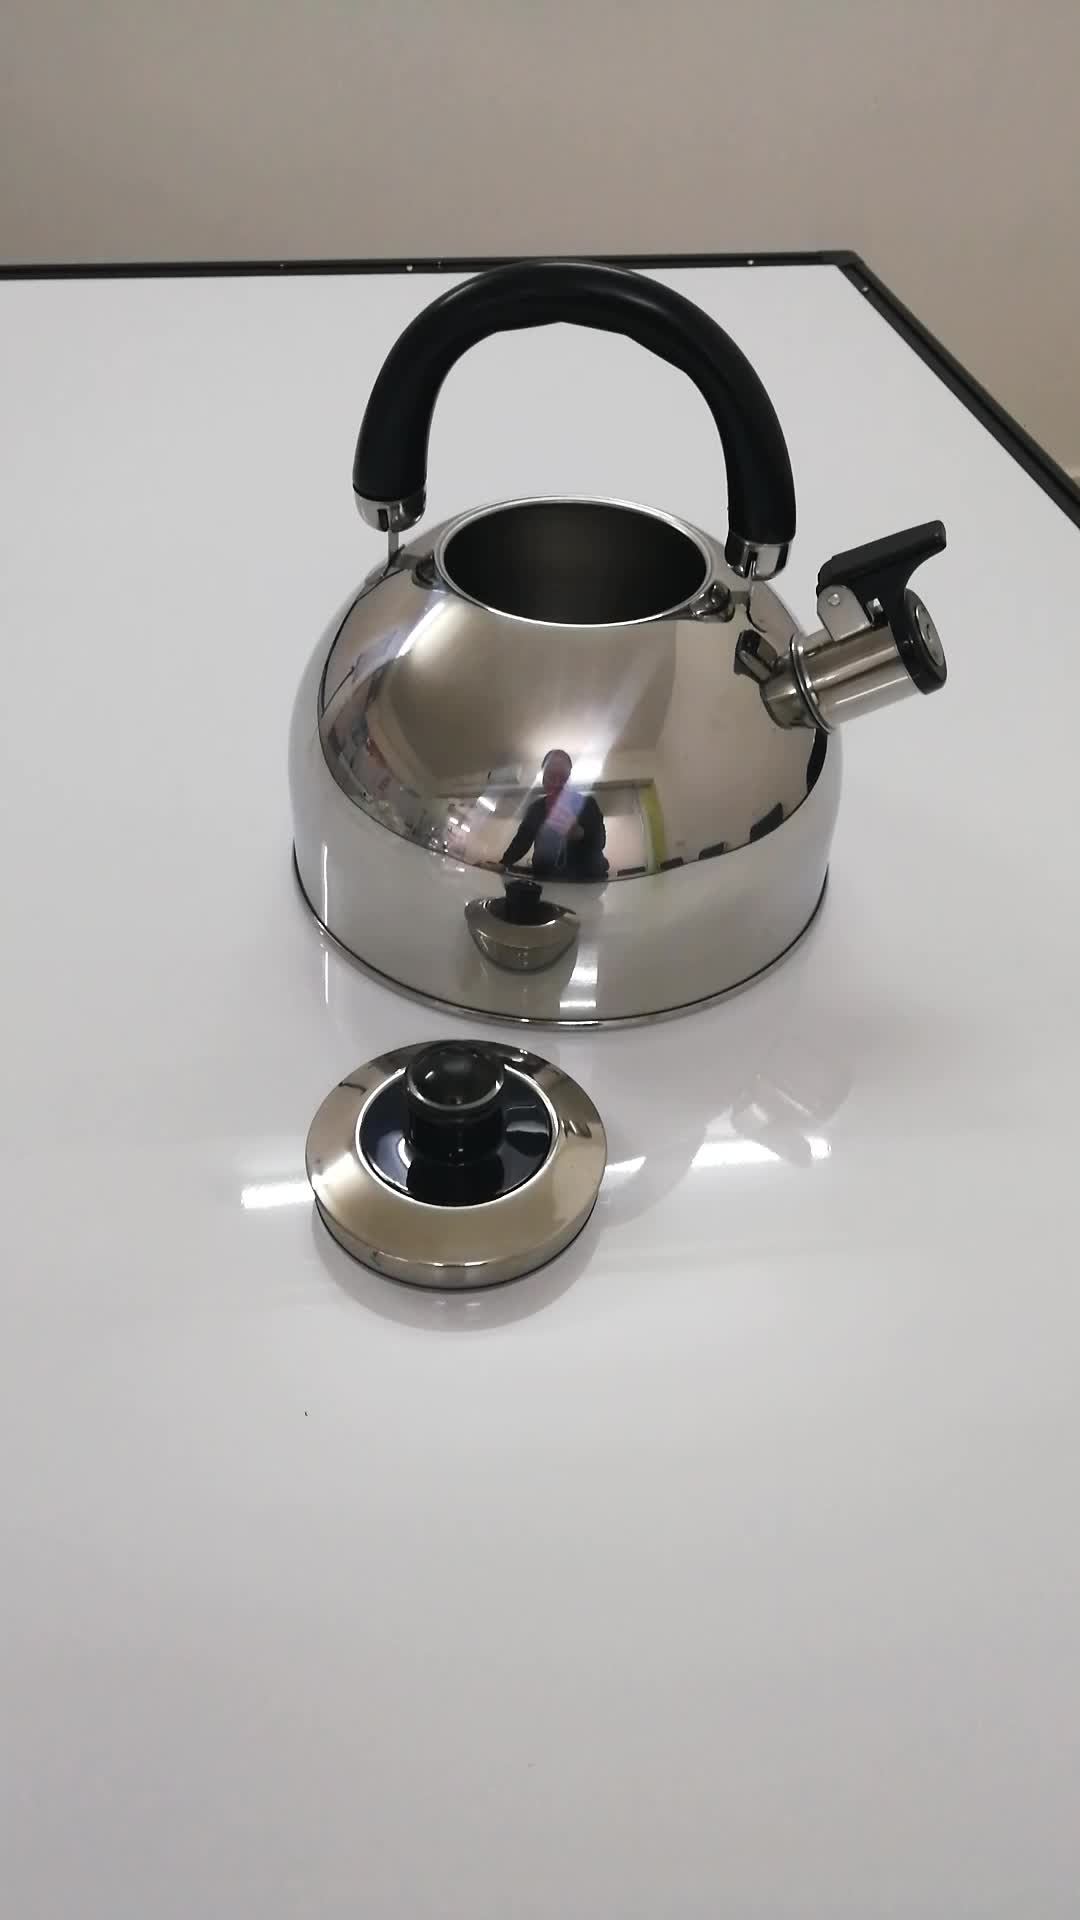 3L Tea Kettle With Single Bottom For Stove Stainless Steel Whistling Teapot Water Camping Kettle